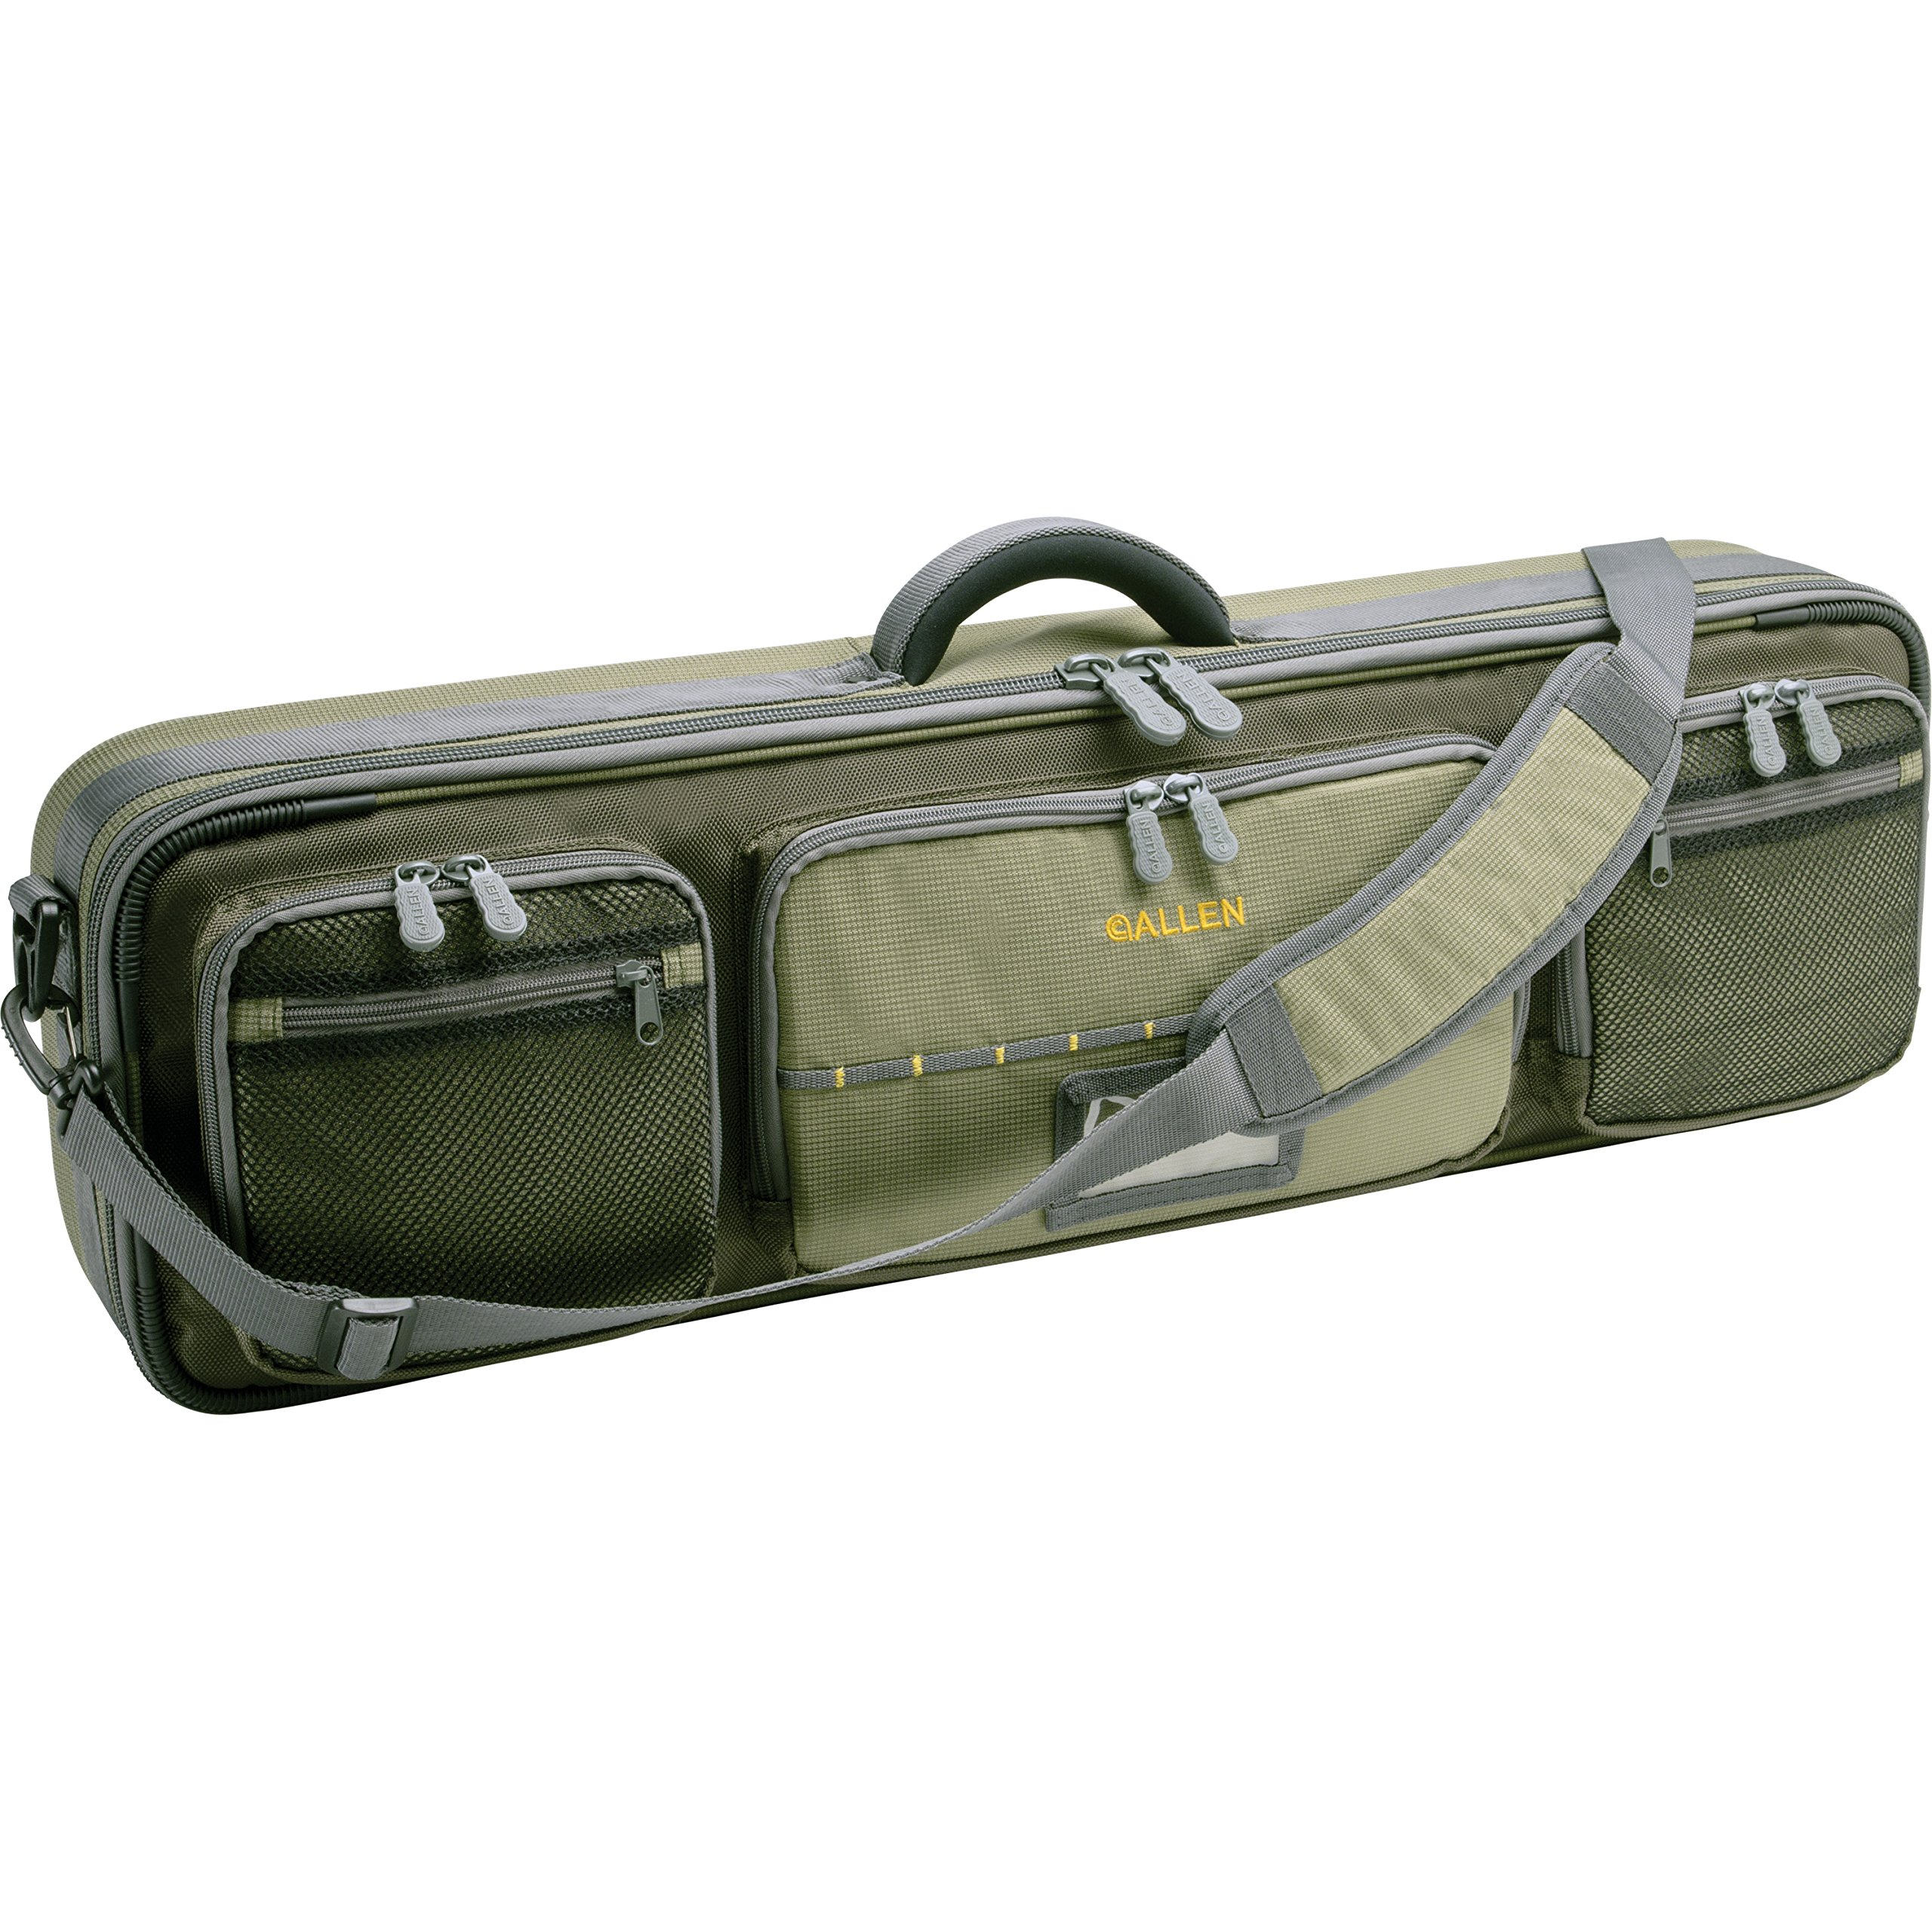 Allen Cottonwood Fishing Rod & Gear Bag, Hold up to 4 fishing rods